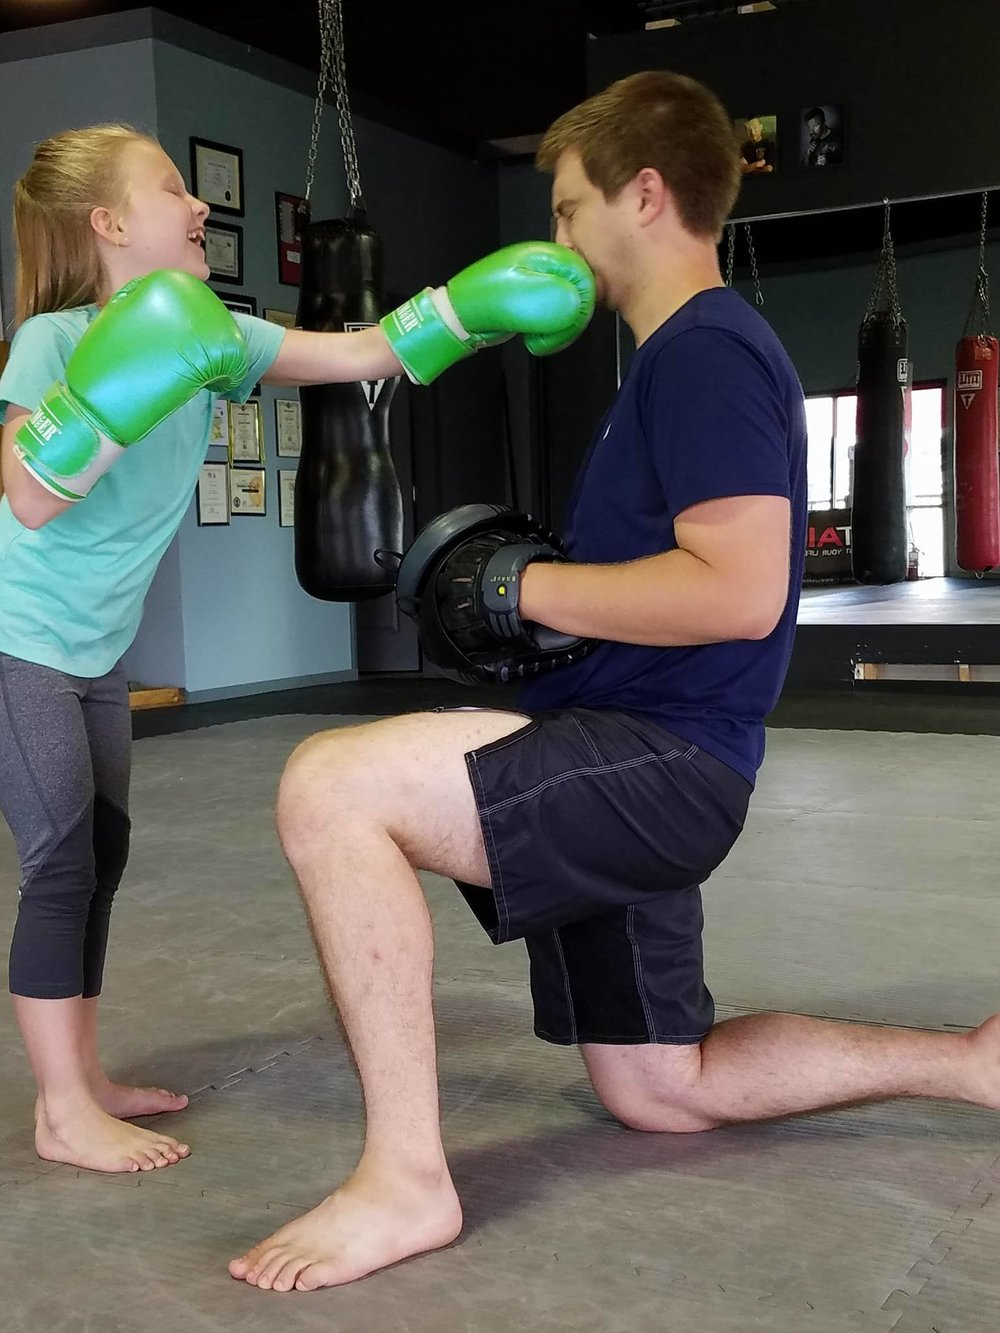 Confidence through Fun - Watch your child's confidence soar while learning awesome self-defense and life skills!